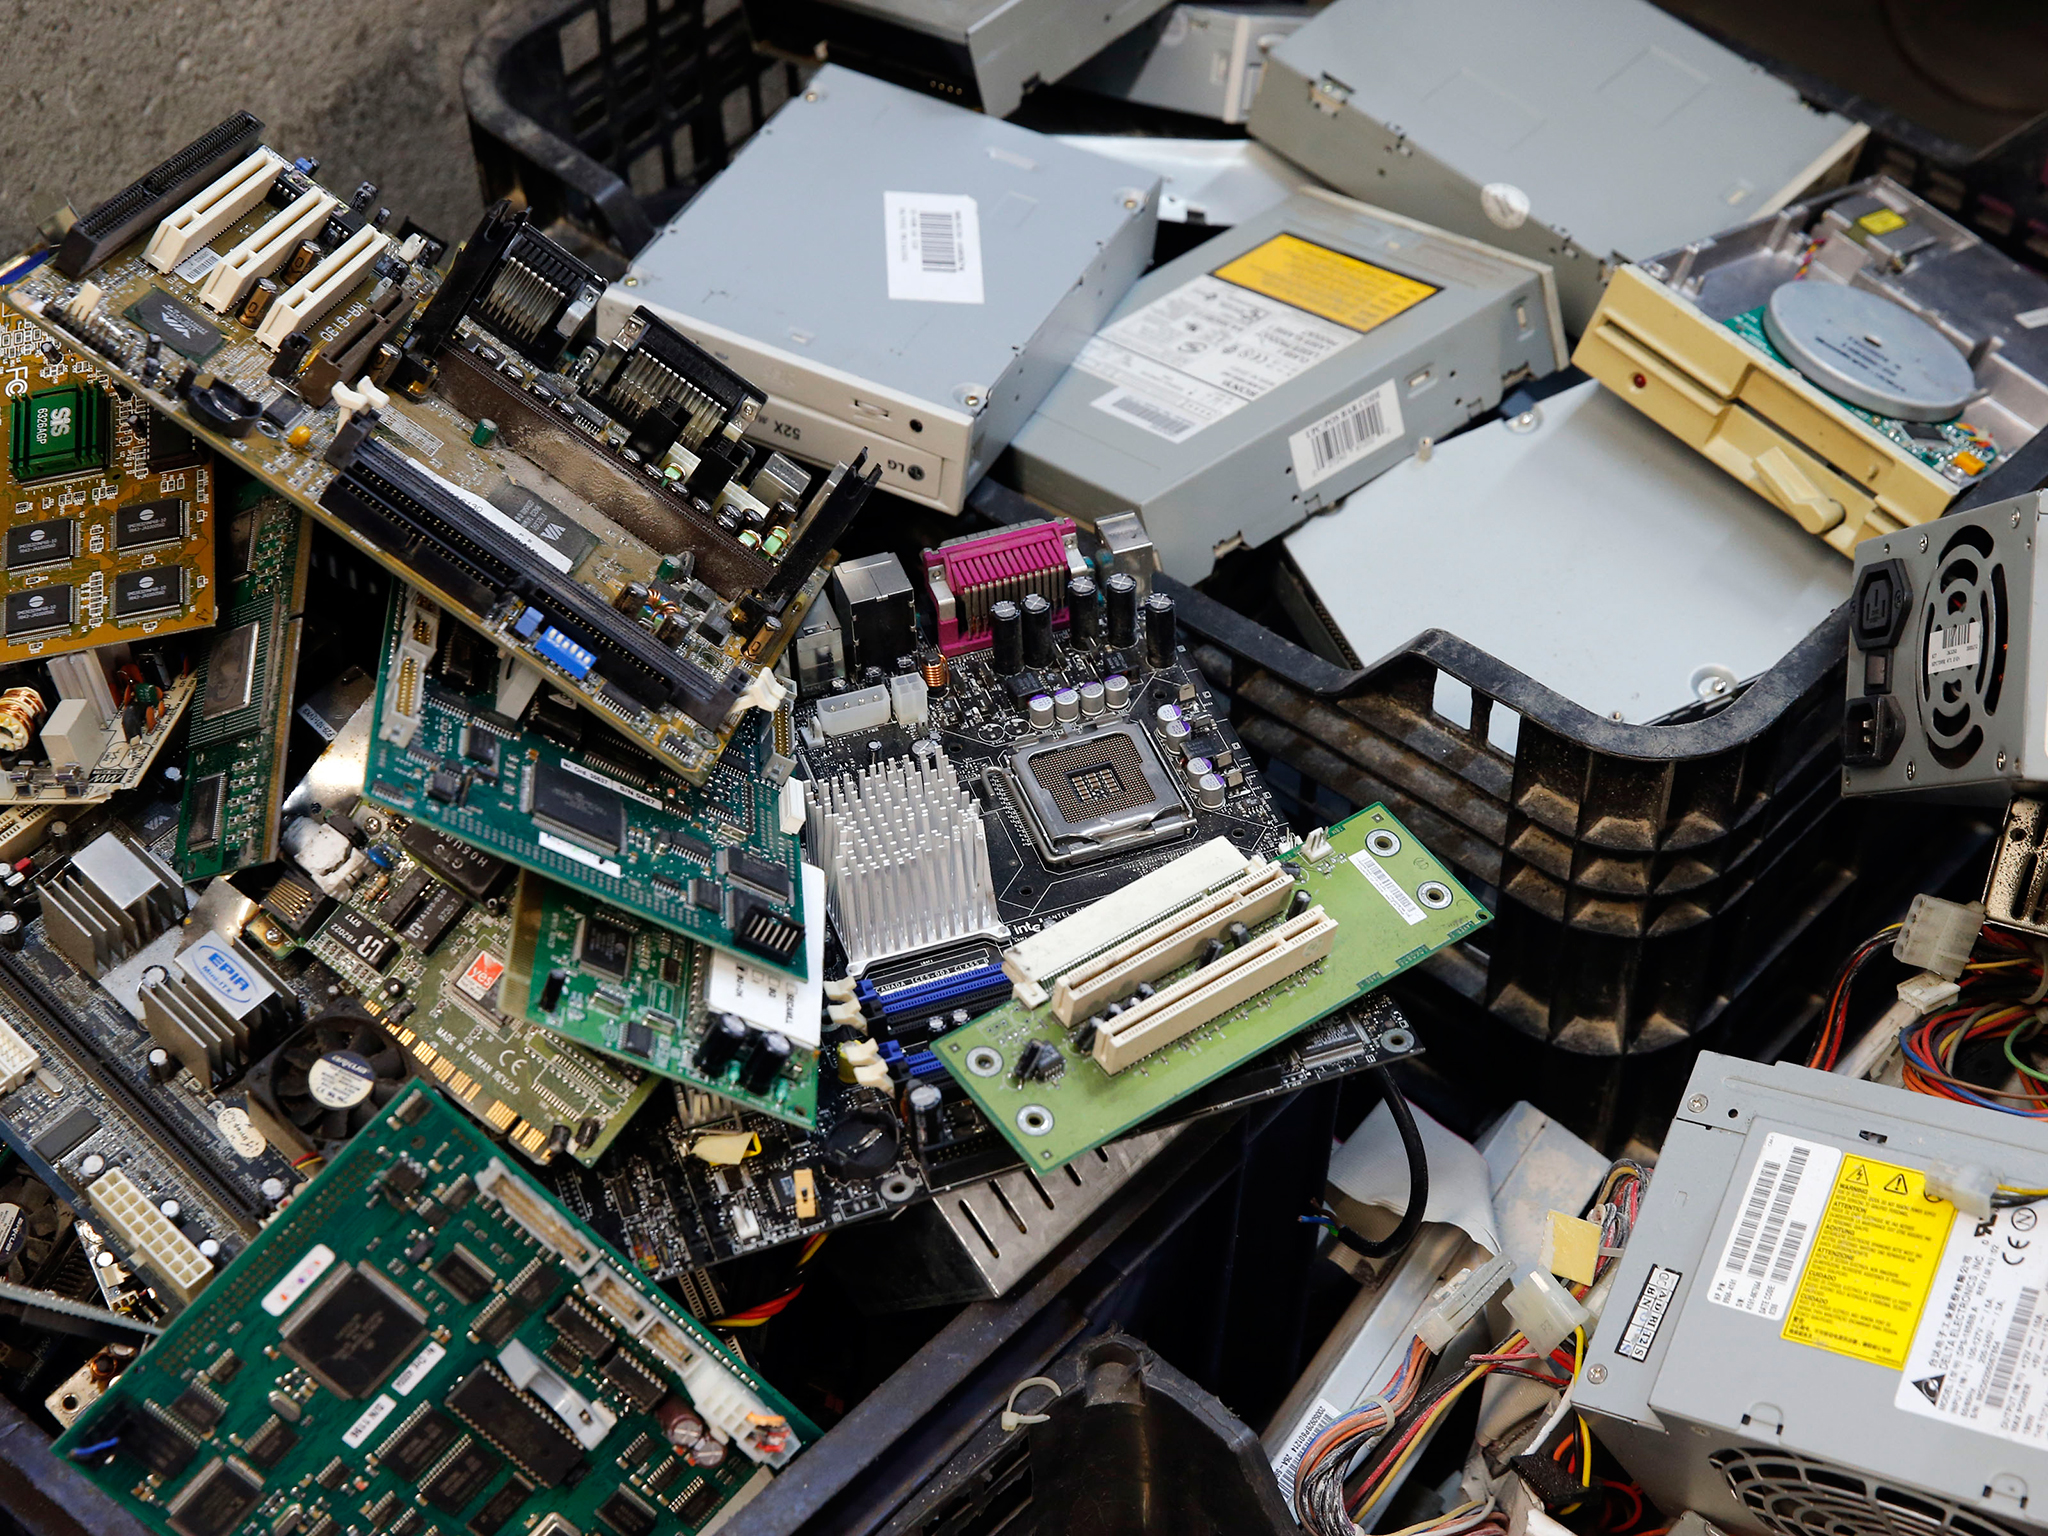 Used It Equipment Buyers Electronics Recycling Companies We Buy Cell Phone Circuit Boards Motherboards Lot Of 9 Escrap Supplies For Excess Centers Electronic Components Sale Sell Arizona